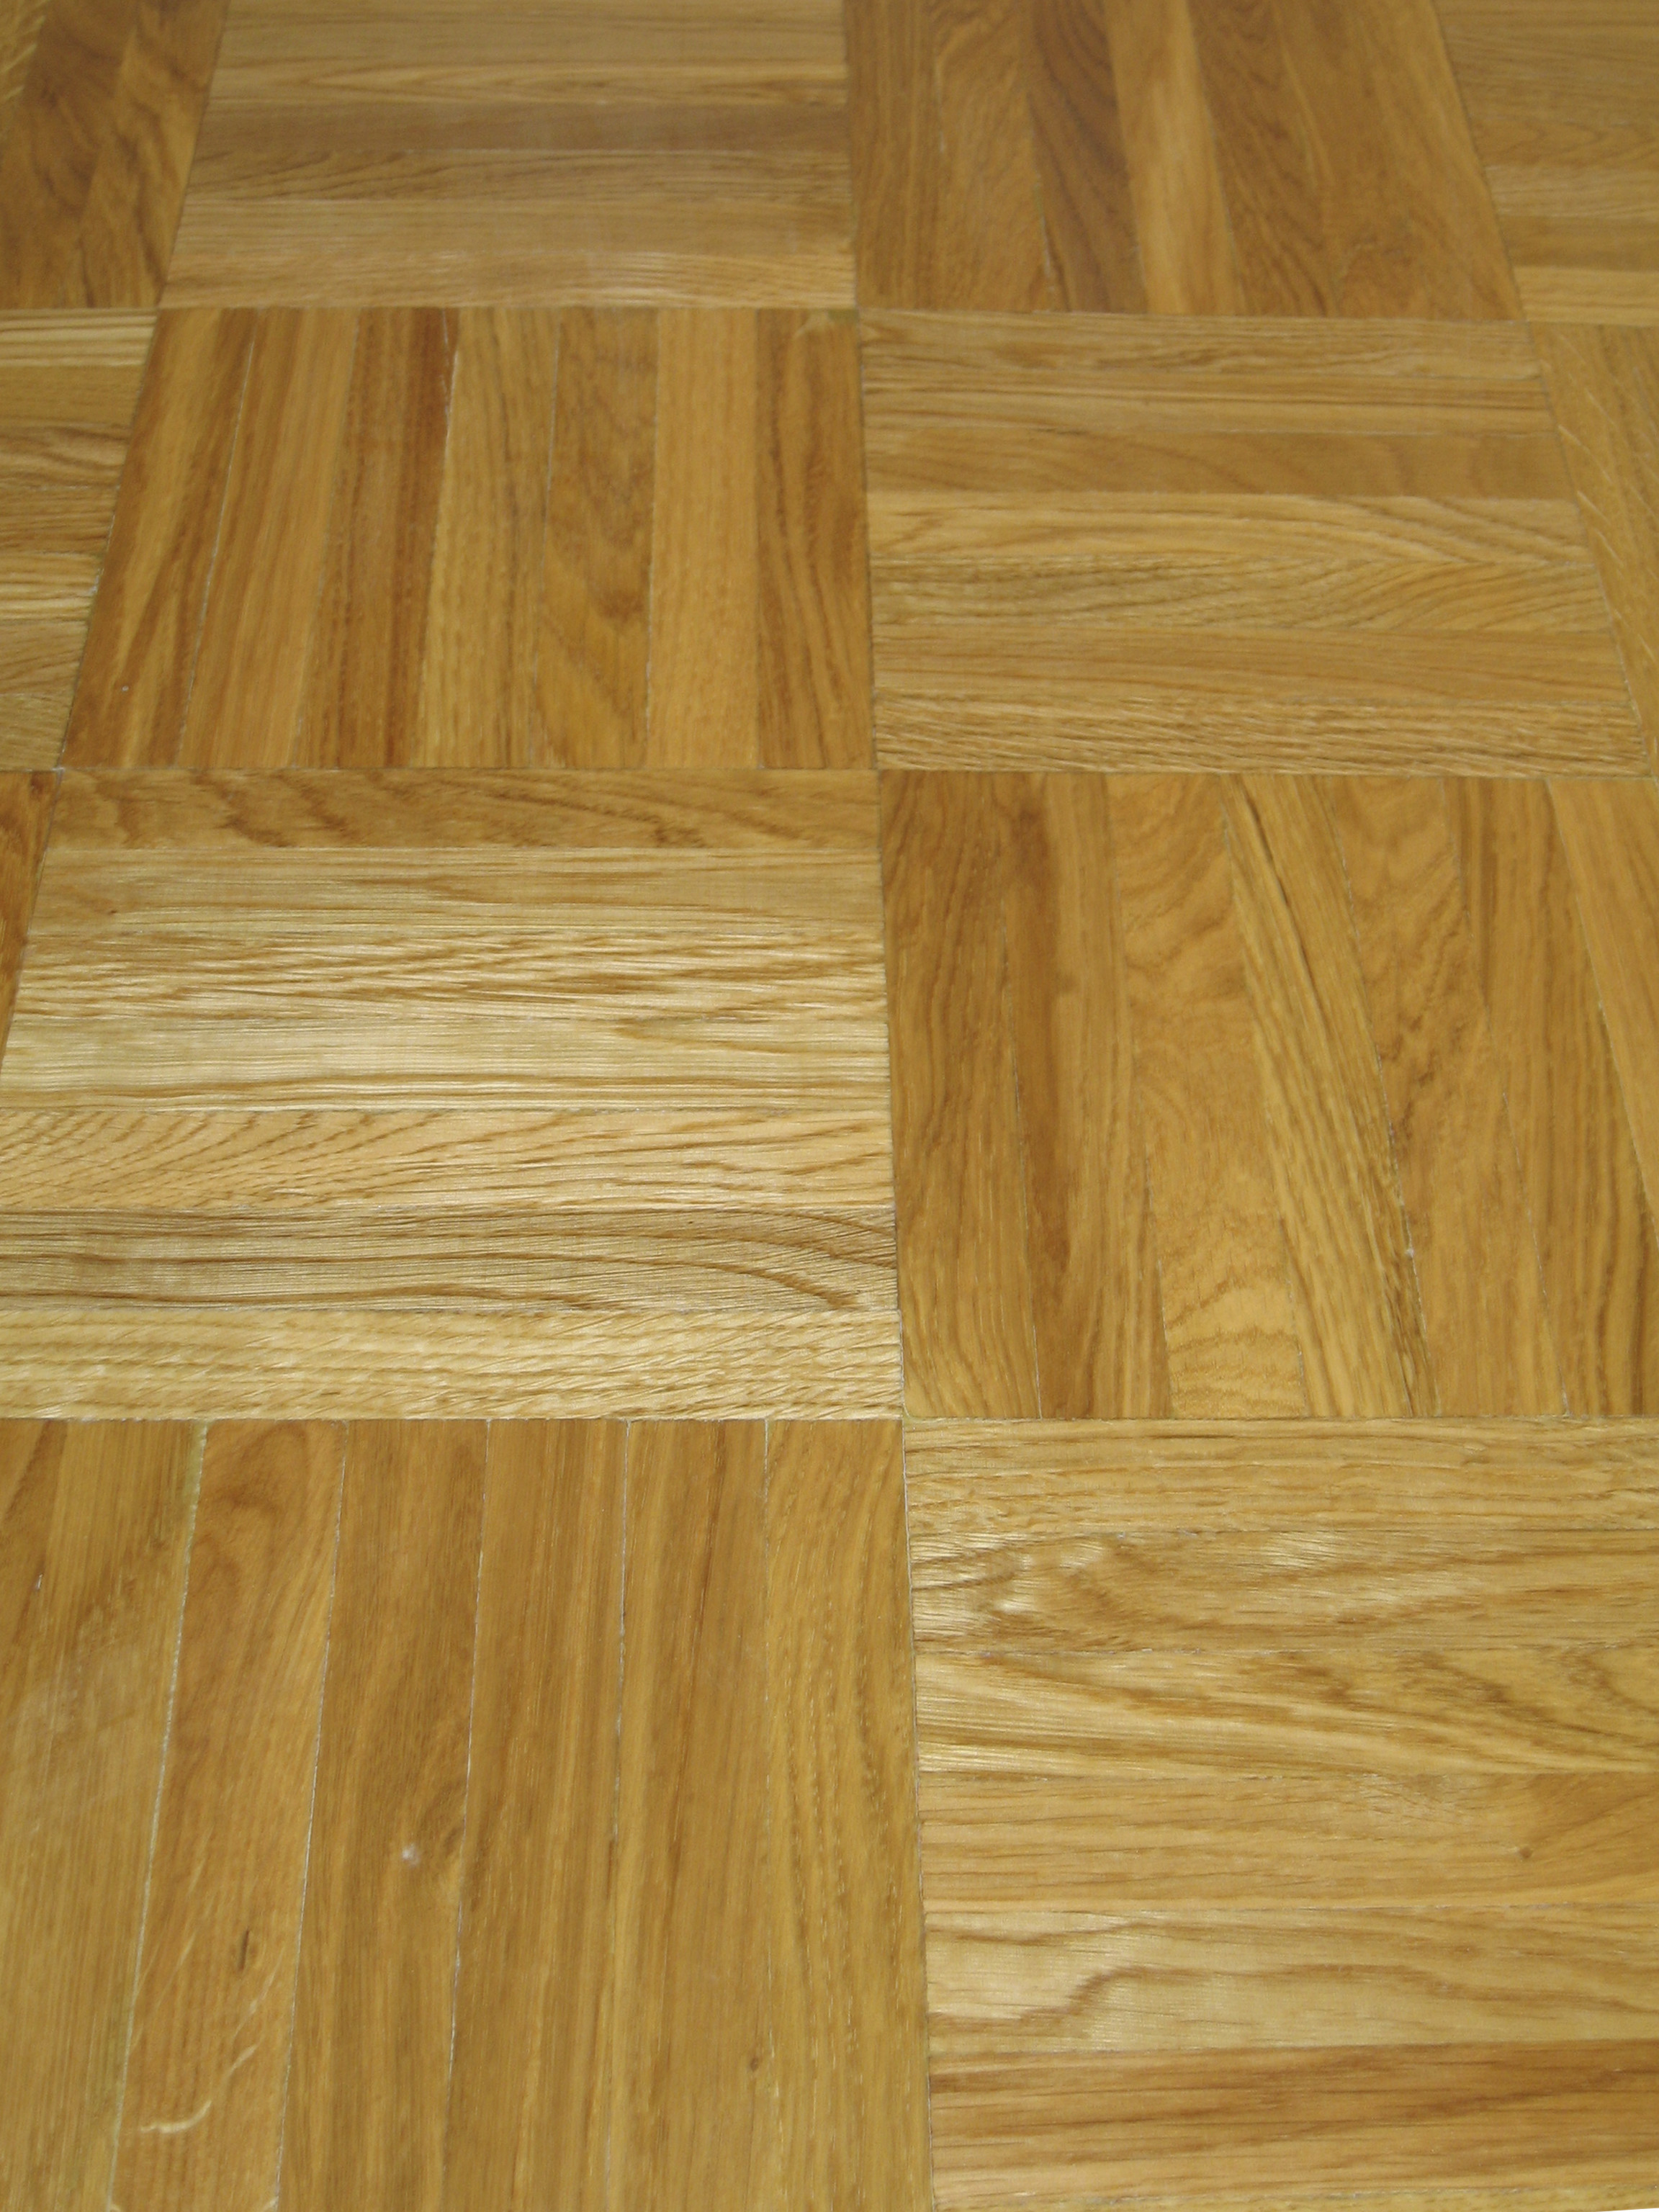 hardwood flooring business for sale of lamel parquet znakovi kvalitete throughout on the main location of tvin company in virovitica there is also a small factory established in 1979 that produces lamel parquet